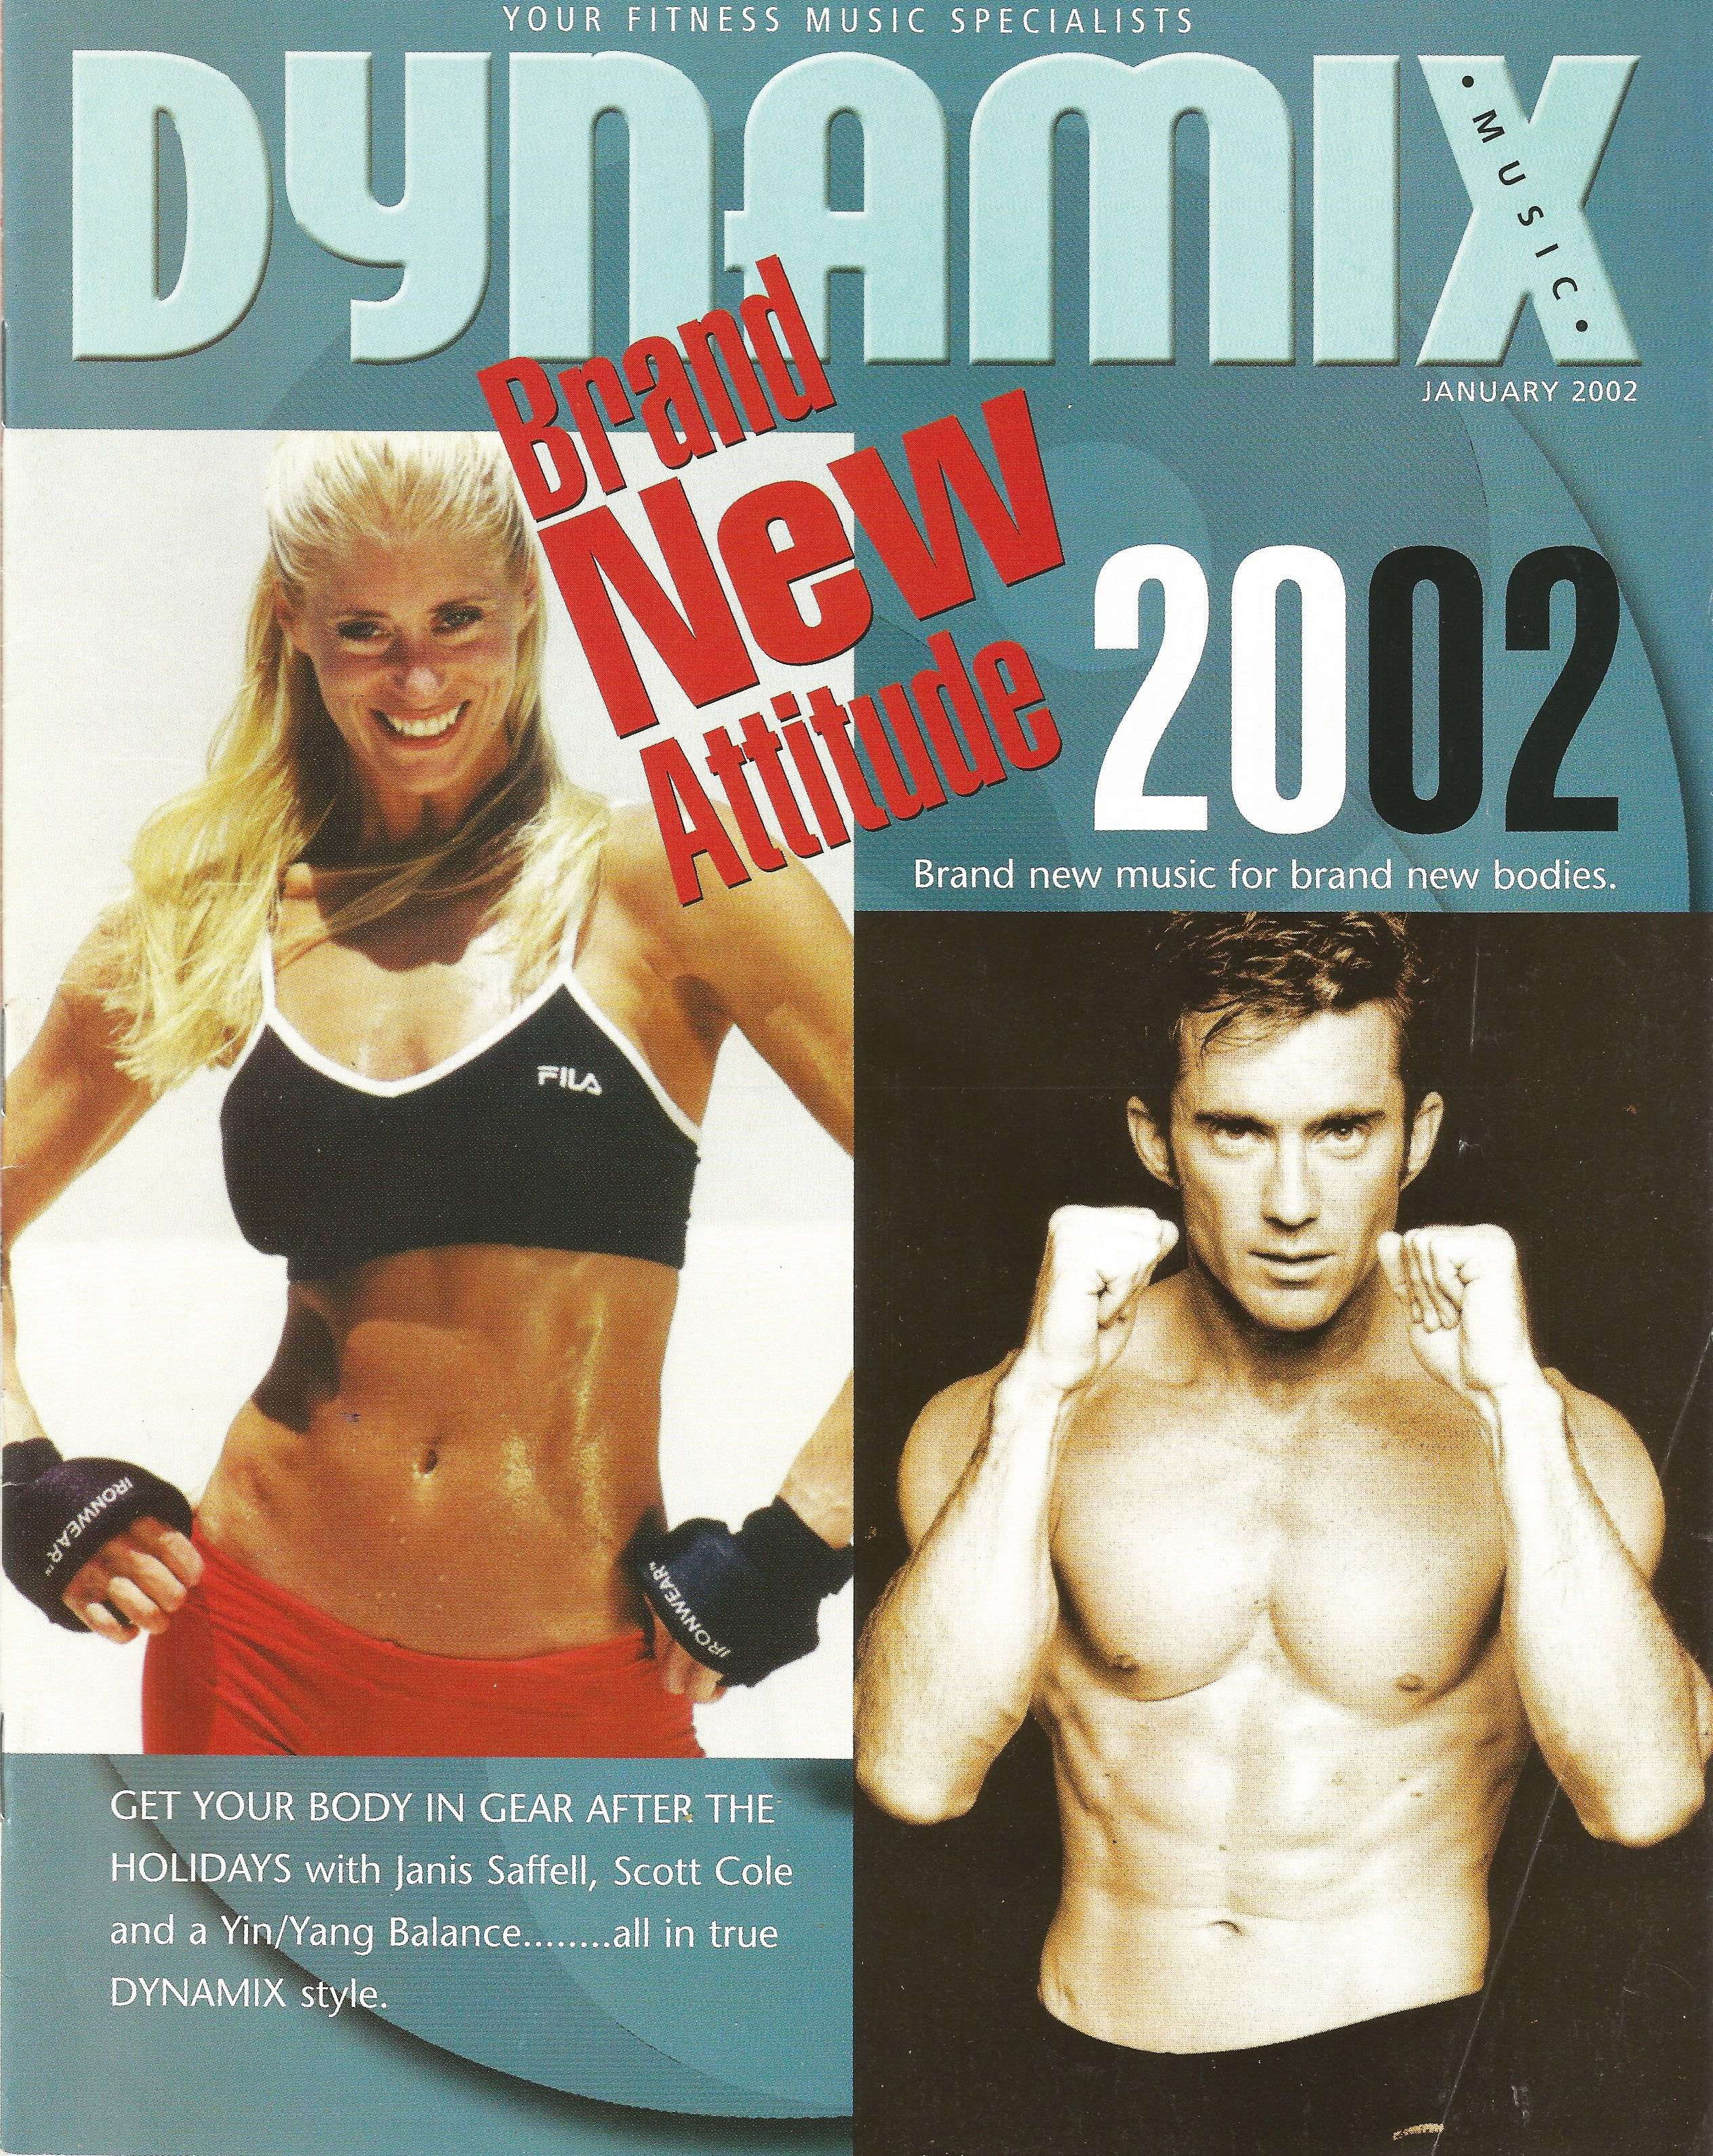 Fitness Celebrity Scott Cole And Janis Saffell On The Cover Of Dynamix Music Www Scottcole Com Www Janissaffell Com Workout Music New Music Magazine Cover